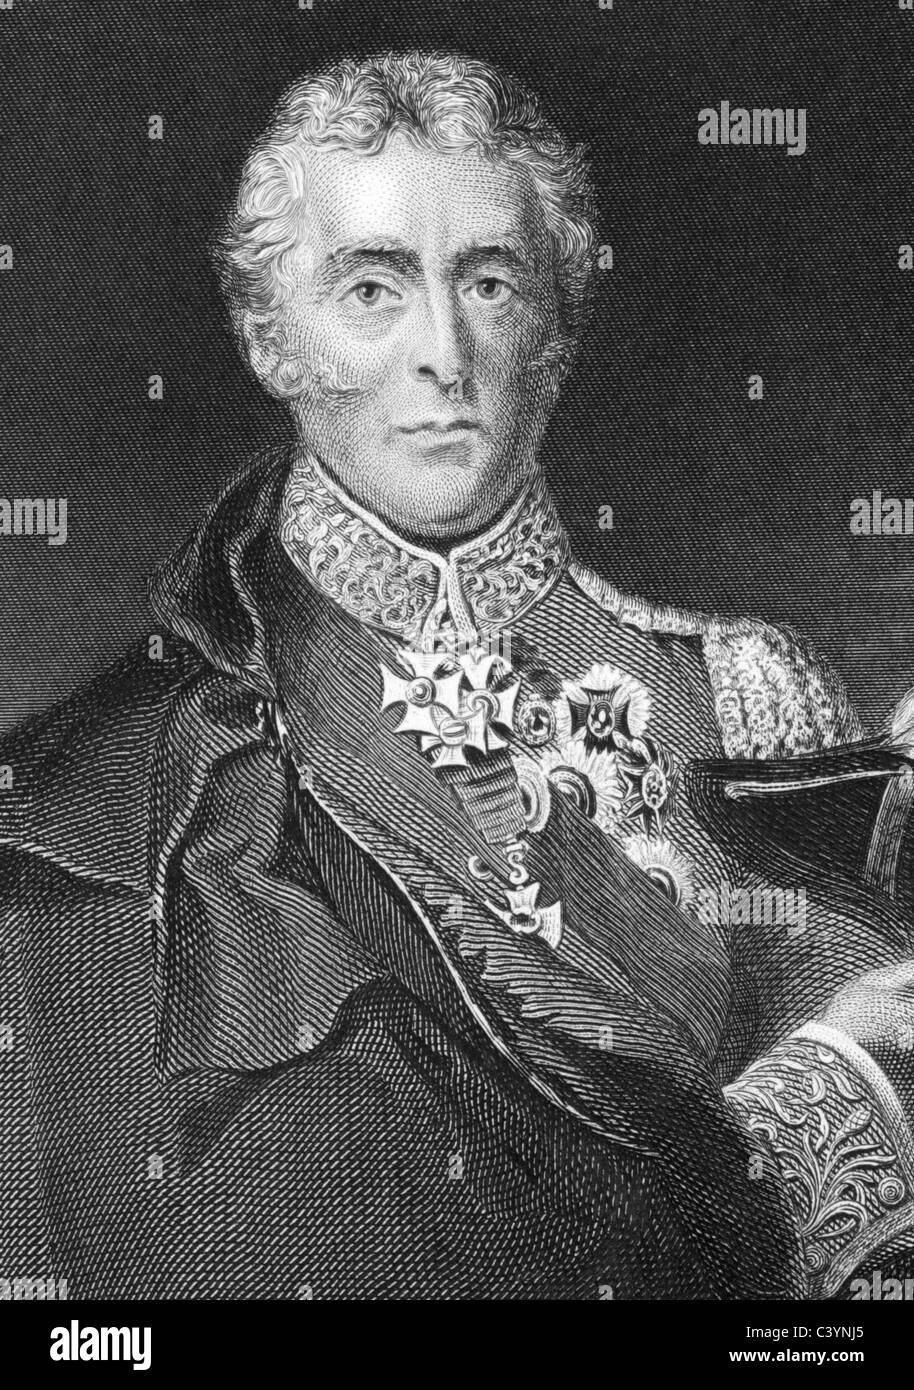 Arthur Wellesley, 1st Duke of Wellington (1769-1852) on engraving from 1800s. Soldier and statesman. - Stock Image